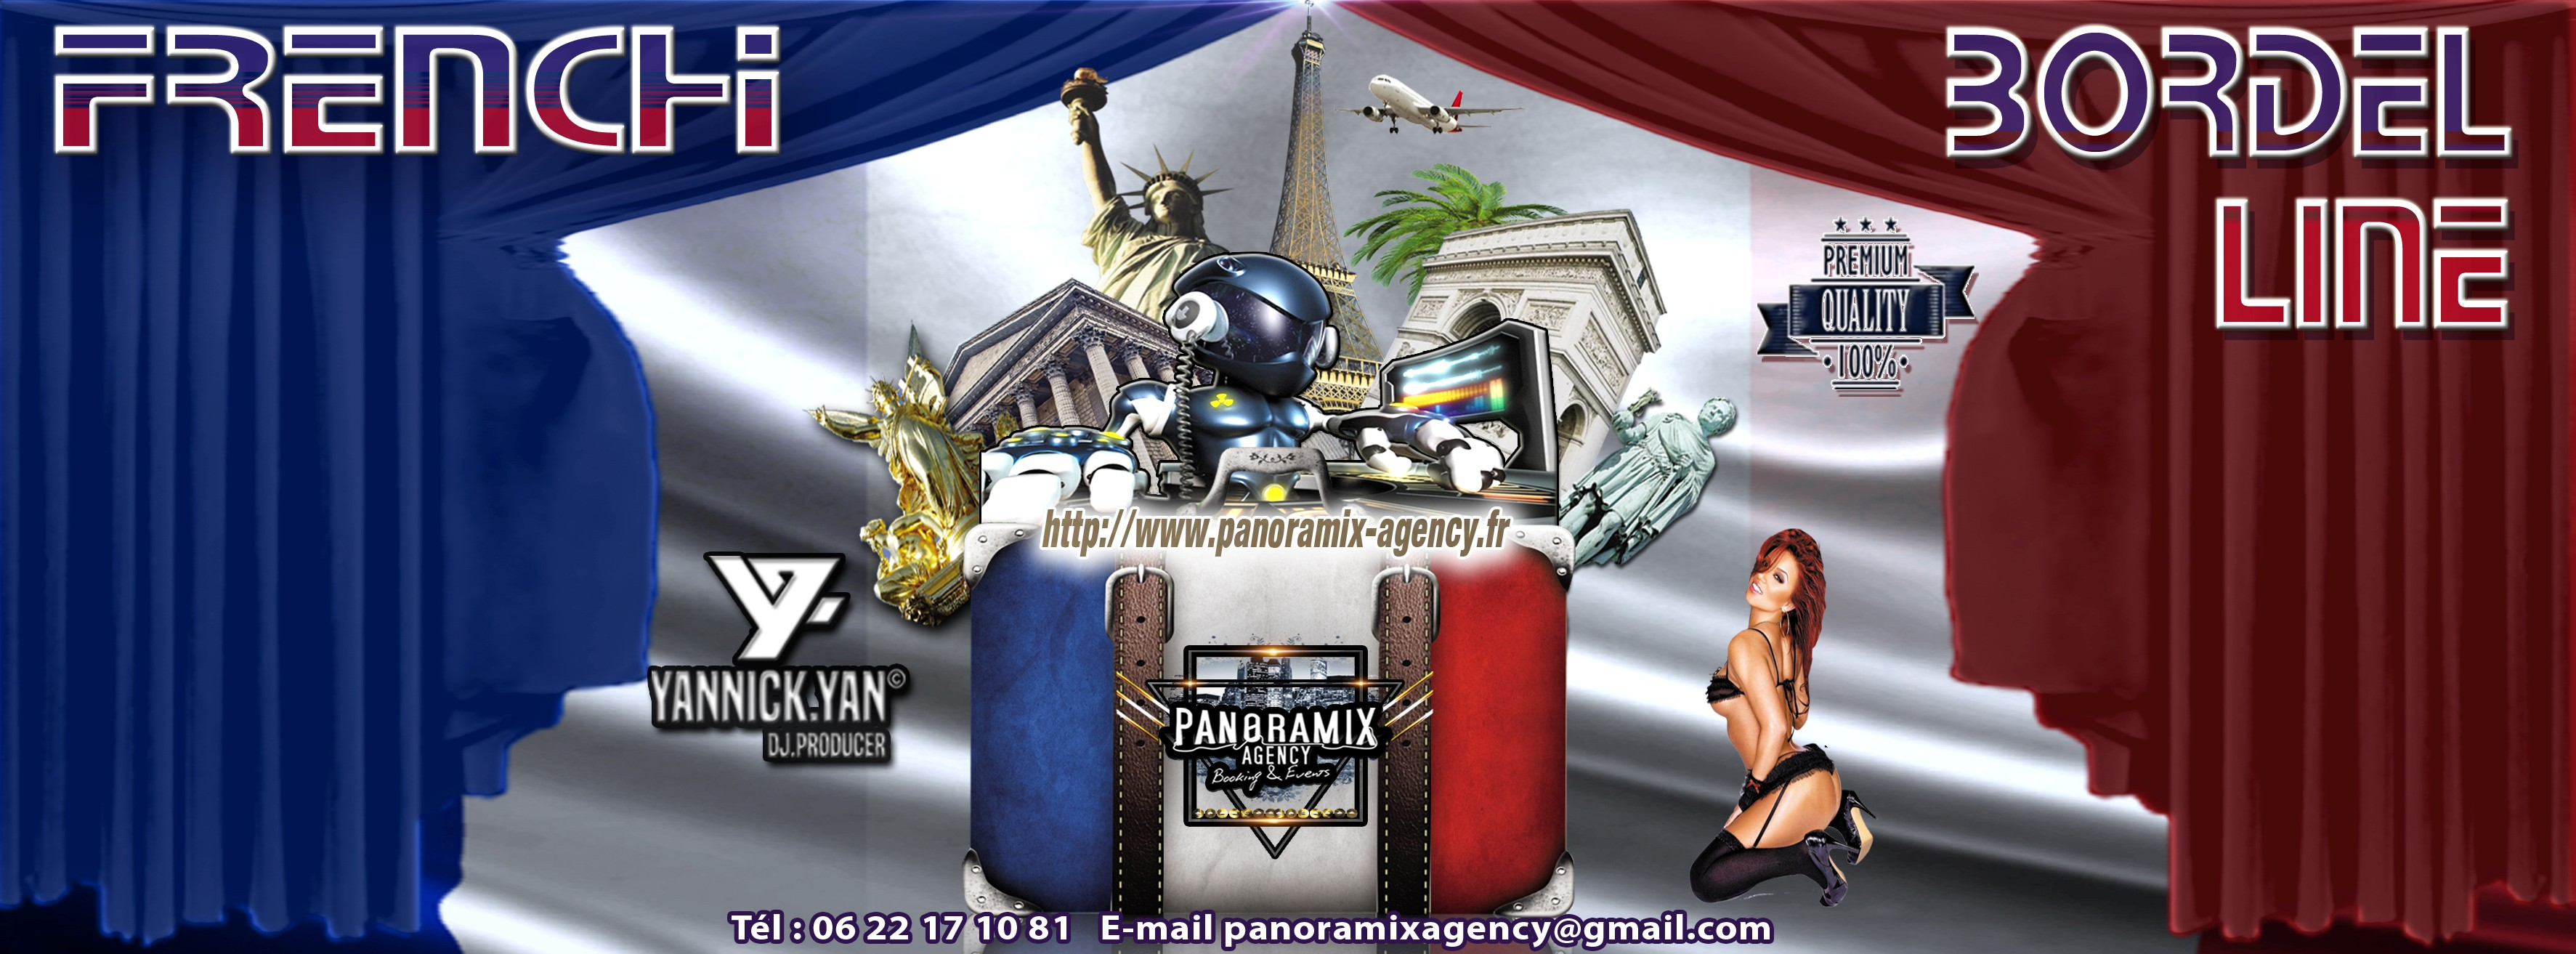 http://panoramix-radio-station.com/wp-content/uploads/2017/04/FRENCH-BORDEL-LINE-BANNER.jpg